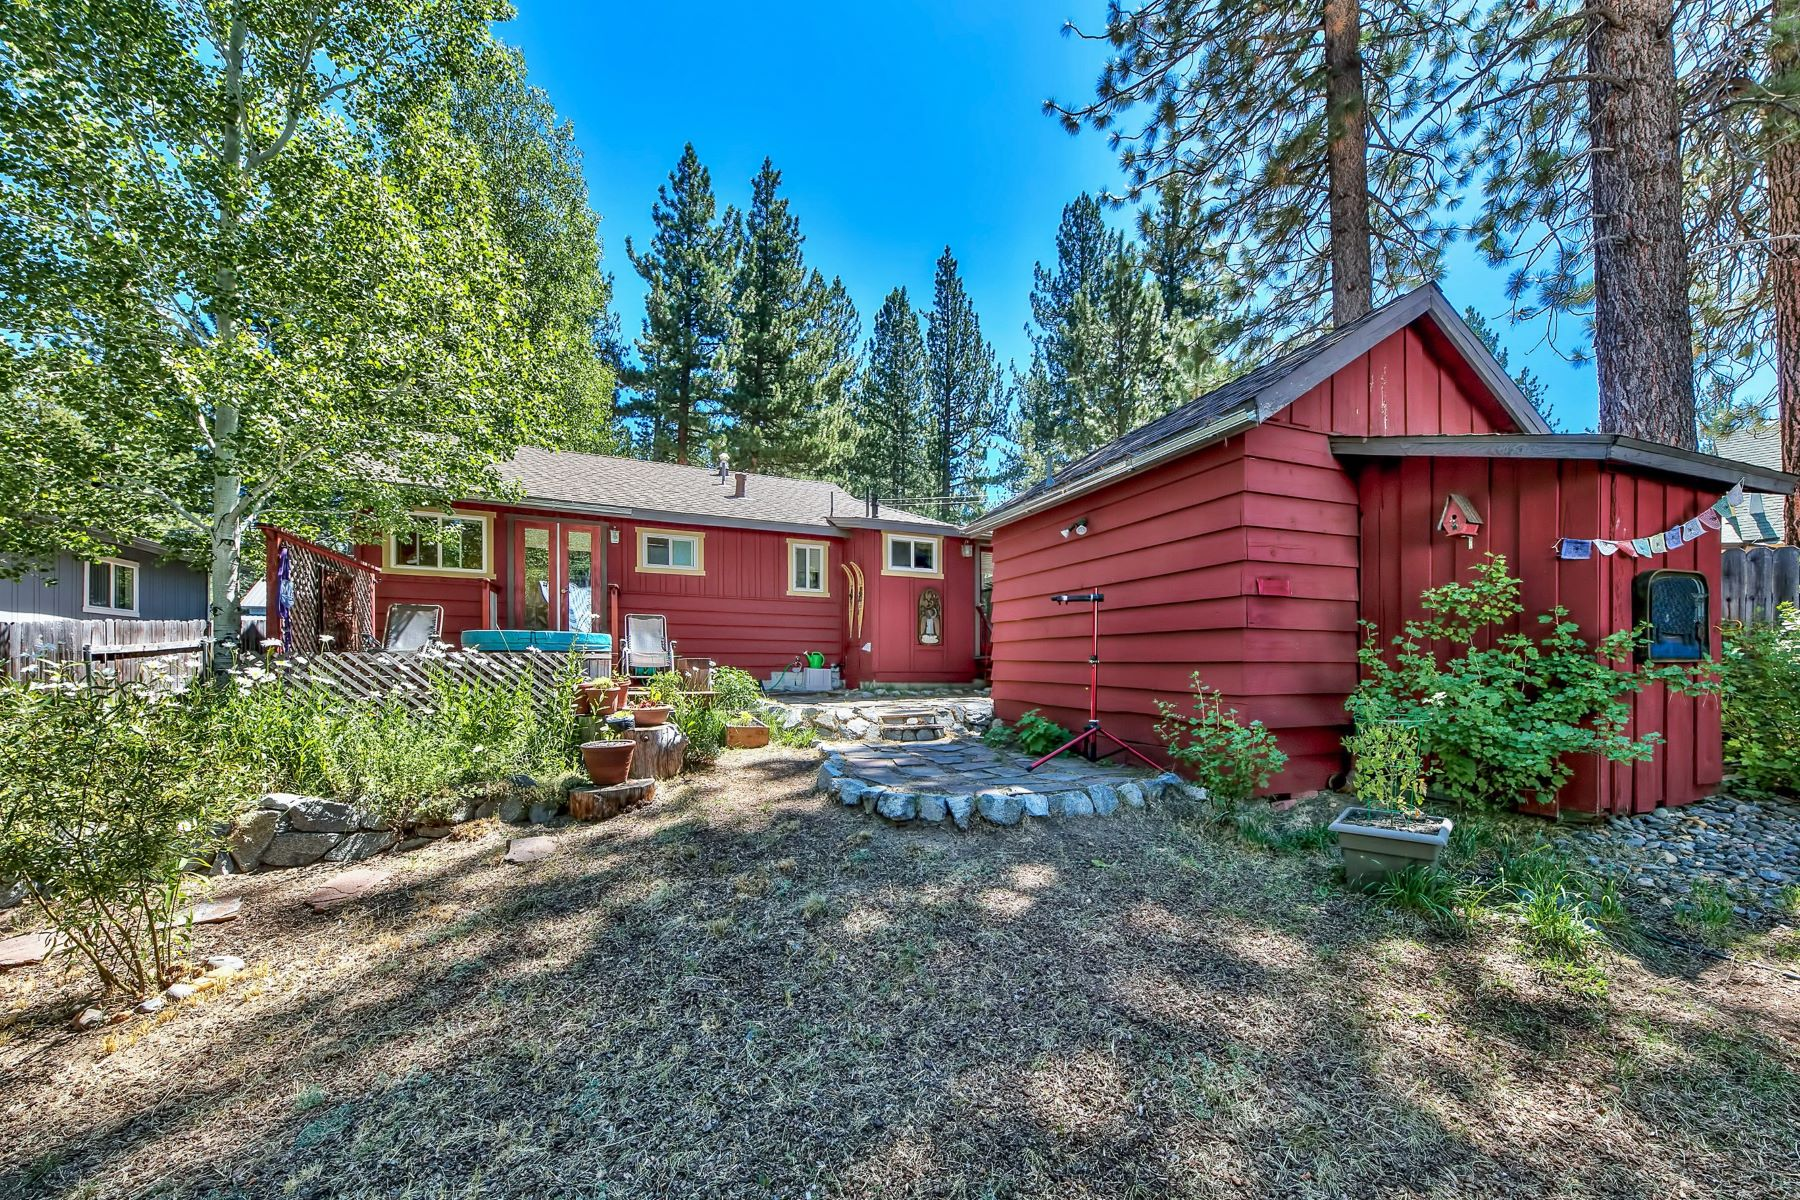 Additional photo for property listing at 1230 Omalley Drive, South Lake Tahoe, CA 96150 1230 Omalley Drive South Lake Tahoe, California 96150 Estados Unidos